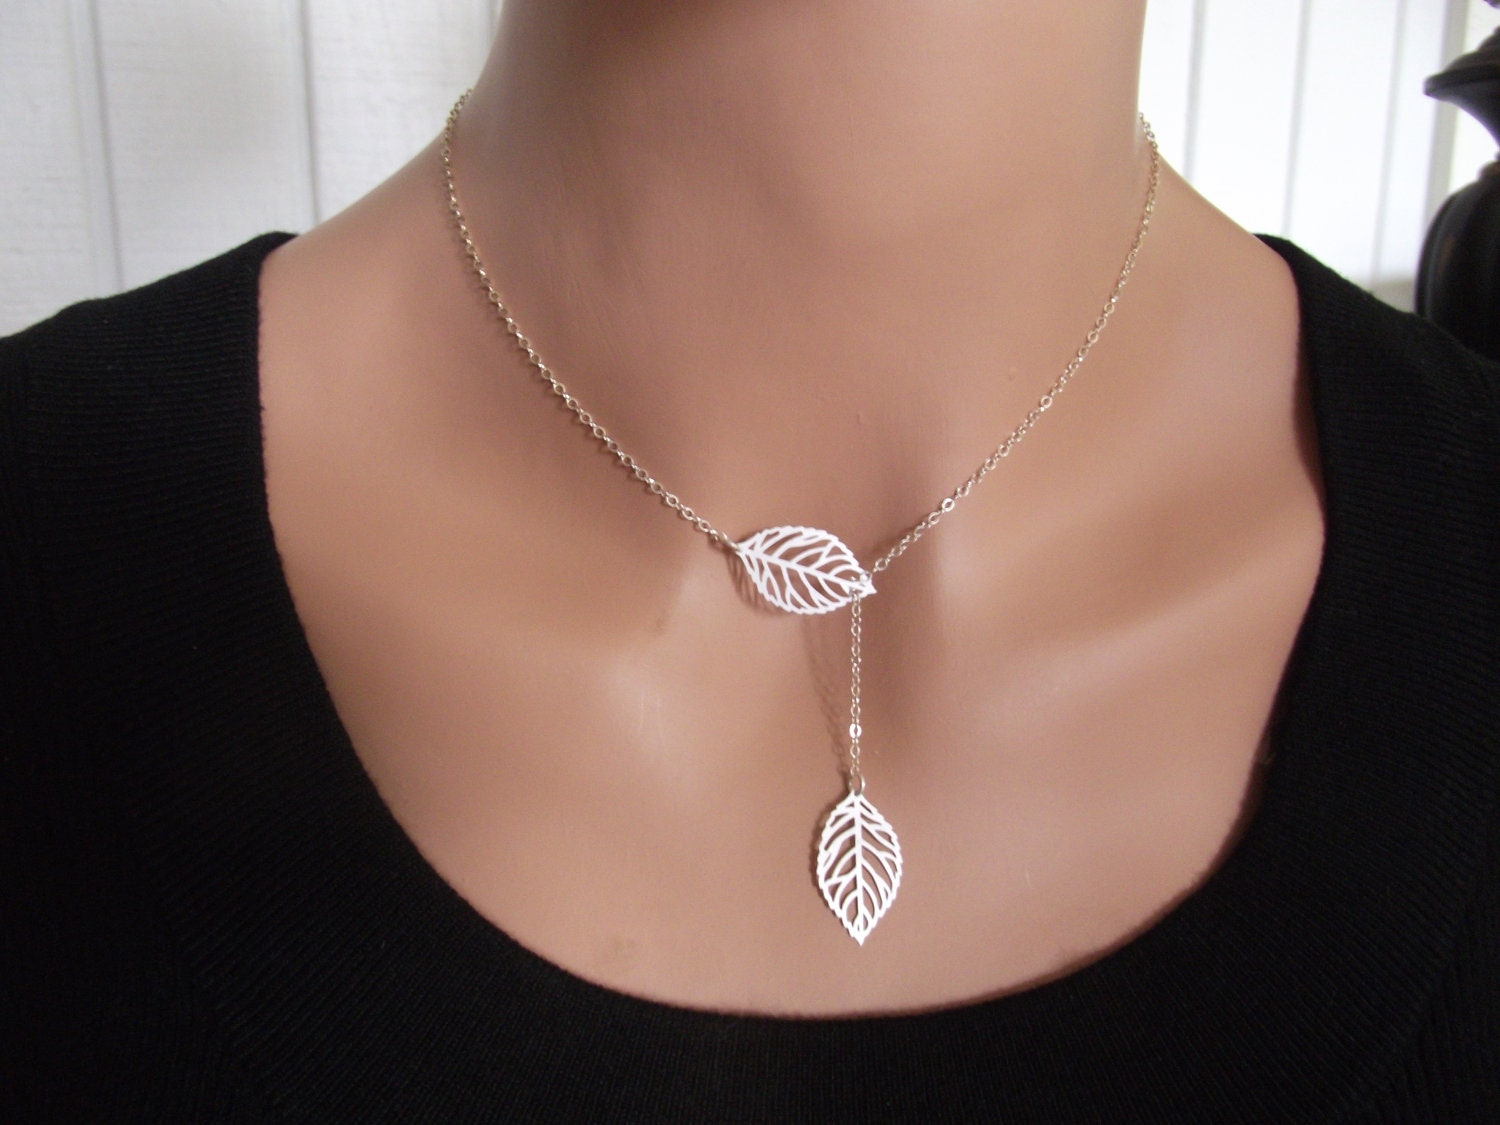 Silver leaf Necklace Sterling Silver necklace Leaf Jewelry